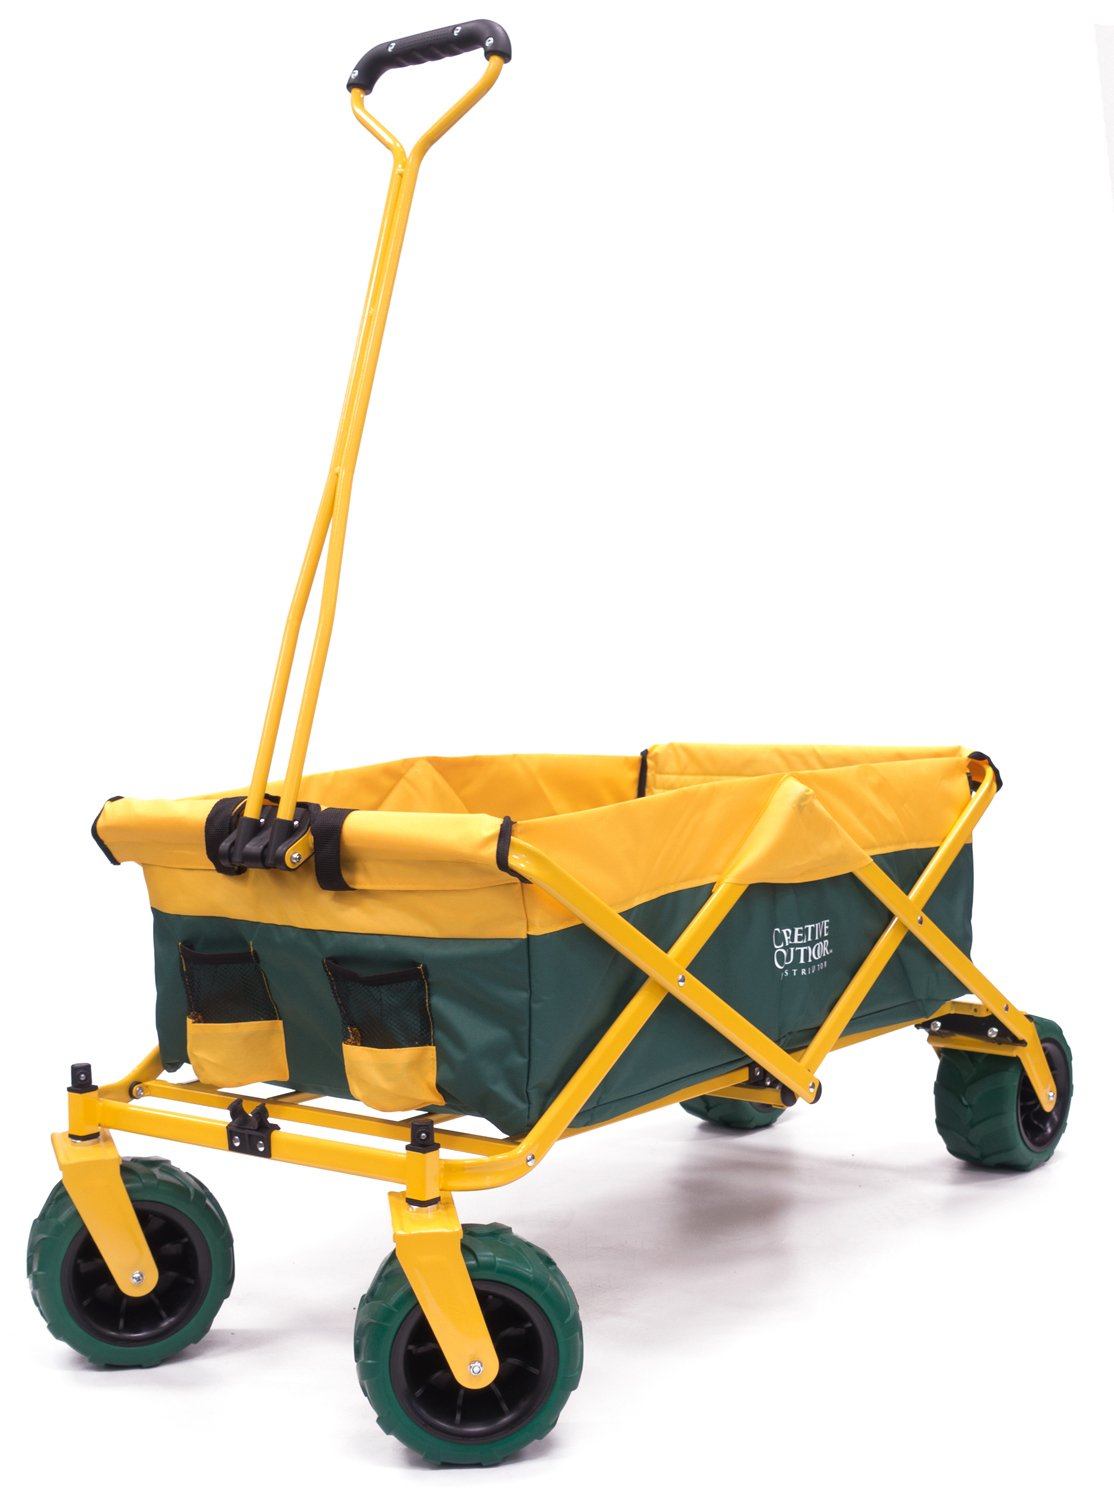 Creative Outdoor Distributor All-Terrain Folding SPORTS Team Wagon, (Green-Yellow/GreenWheels) 900555 - Multipurpose Cart for Gardening, Camping, Beach Trips, and Travelling